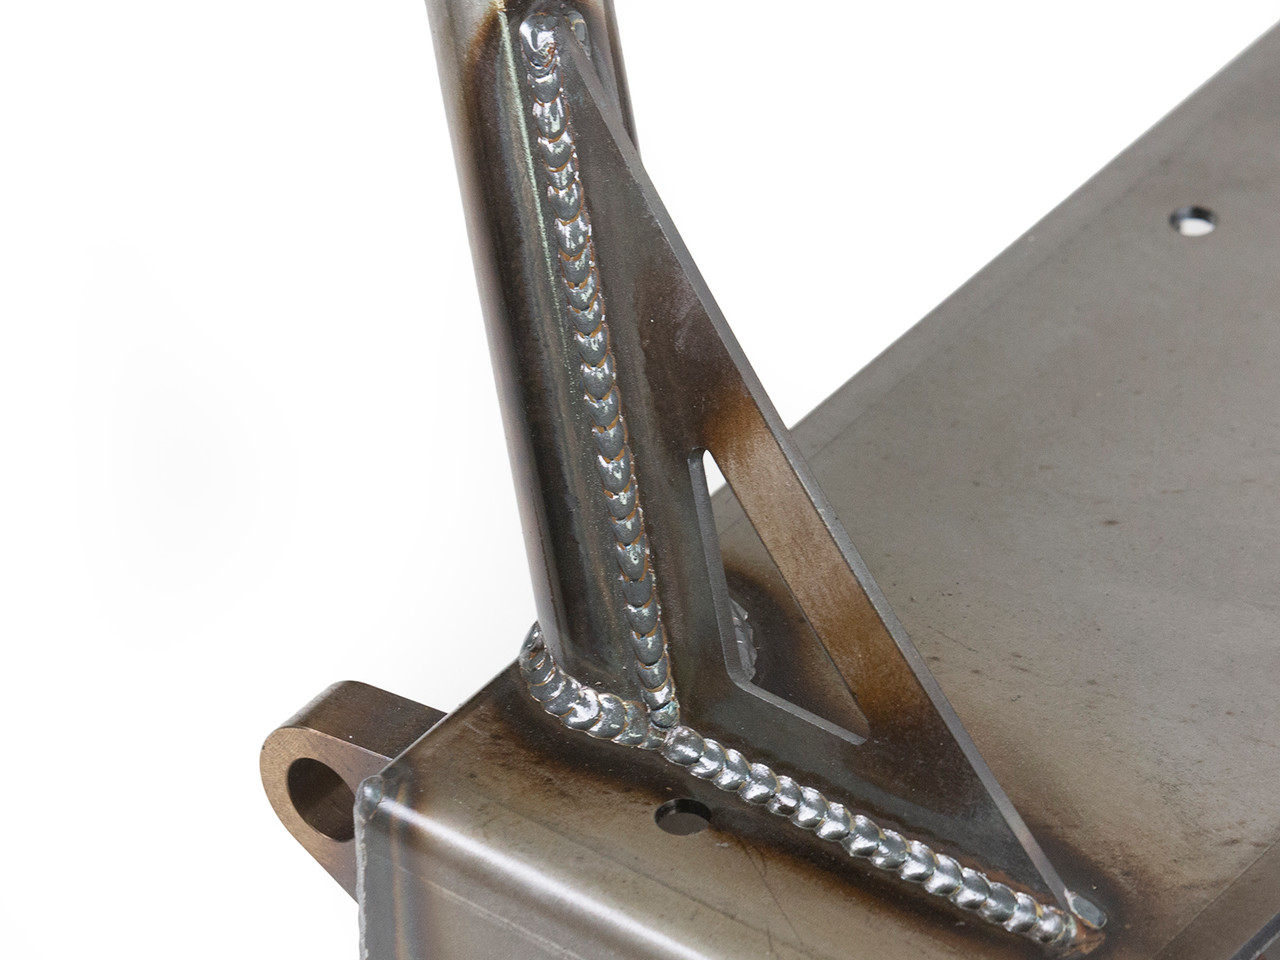 Quality workmanship shown here with a close up of the GenRight welded